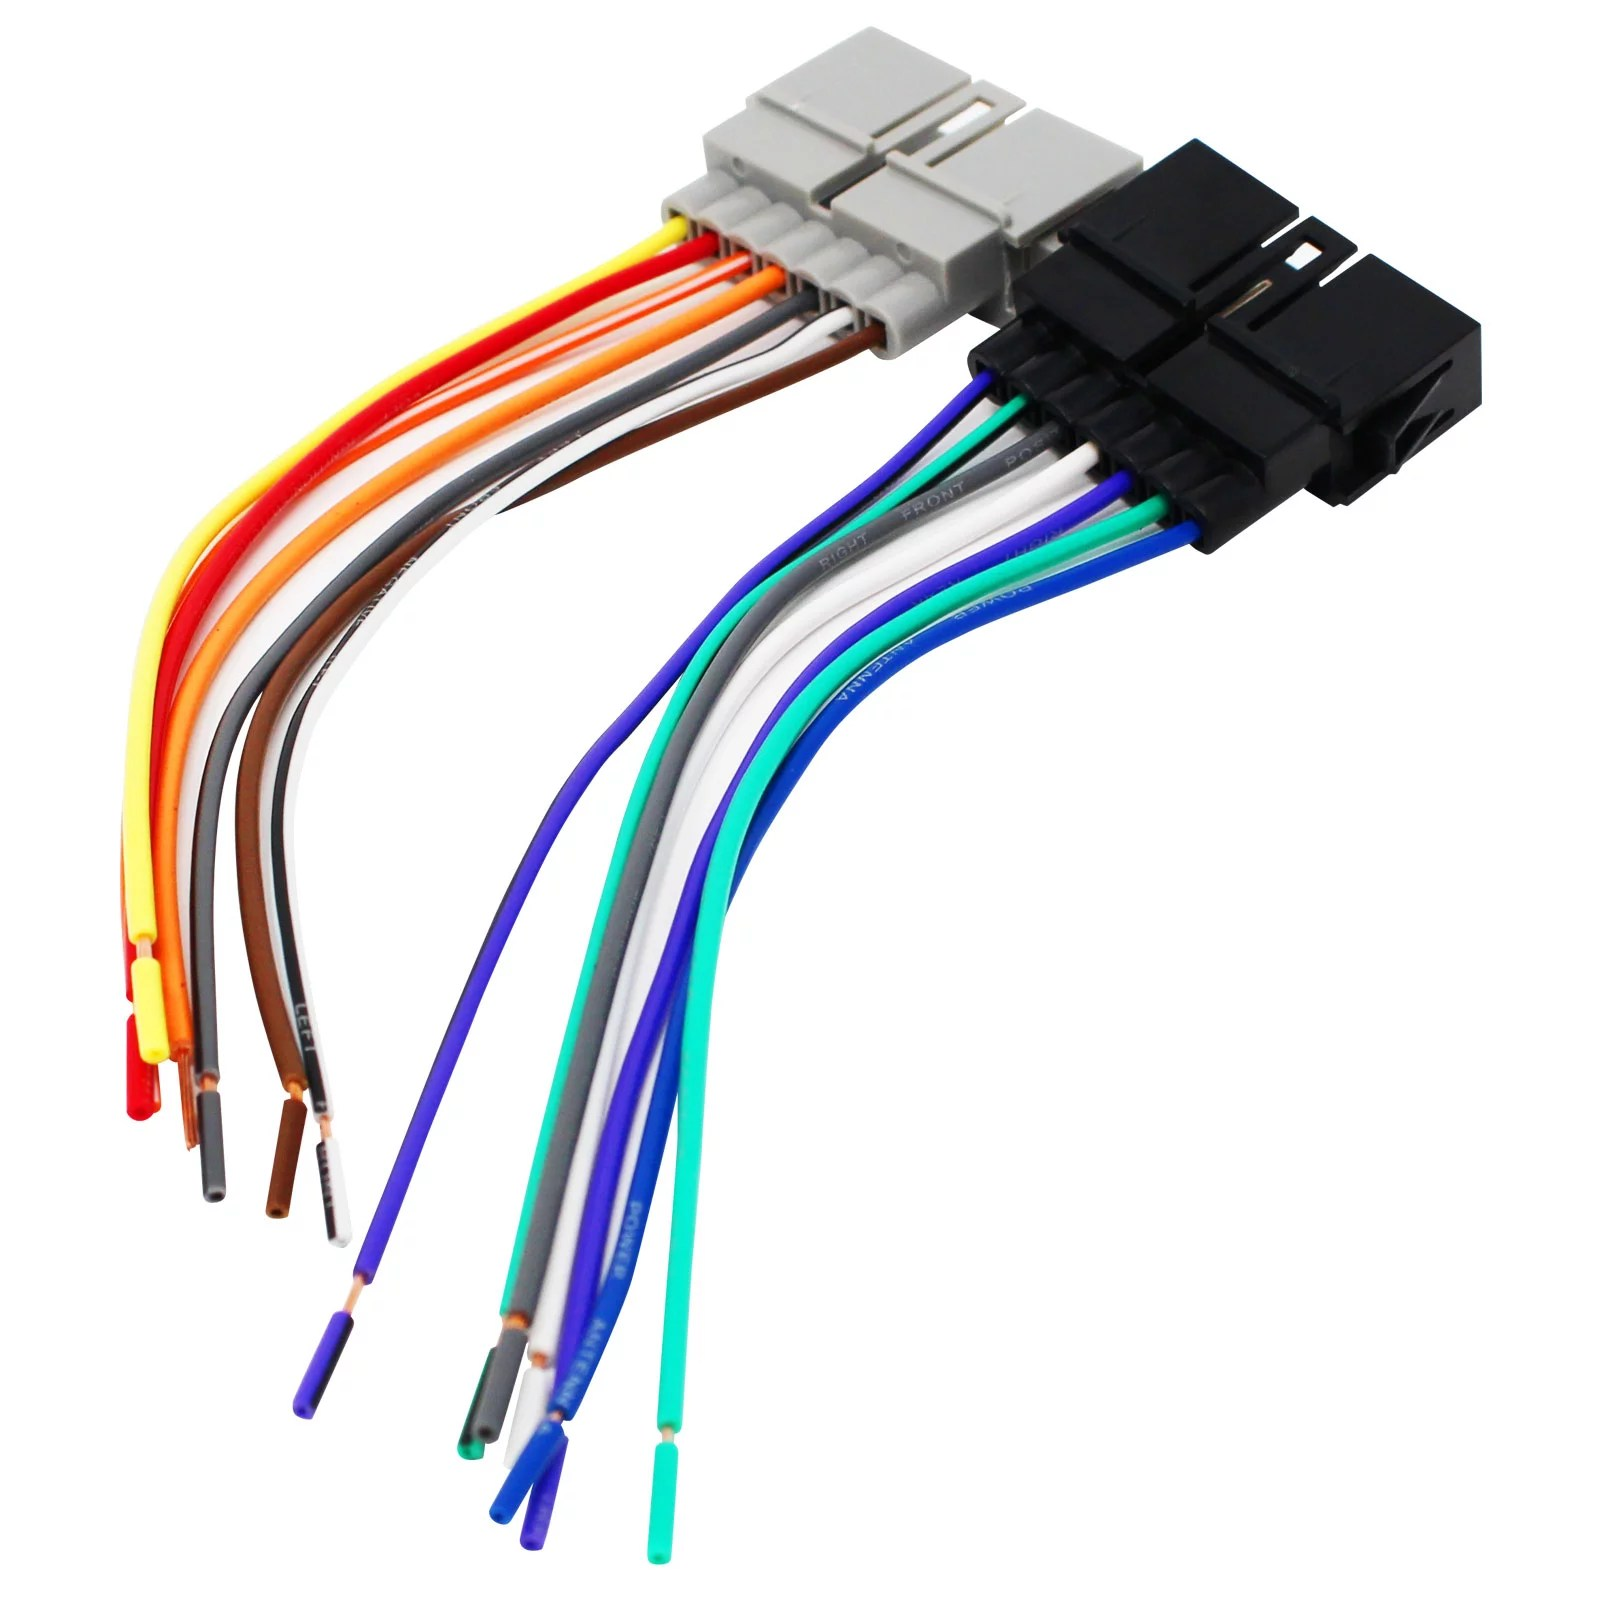 medium resolution of replacement radio wiring harness for 2001 dodge ram 1500 2000 dodge ram 1500 1999 dodge ram 1500 1998 dodge ram 1500 1997 dodge ram 1500 1996 dodge ram